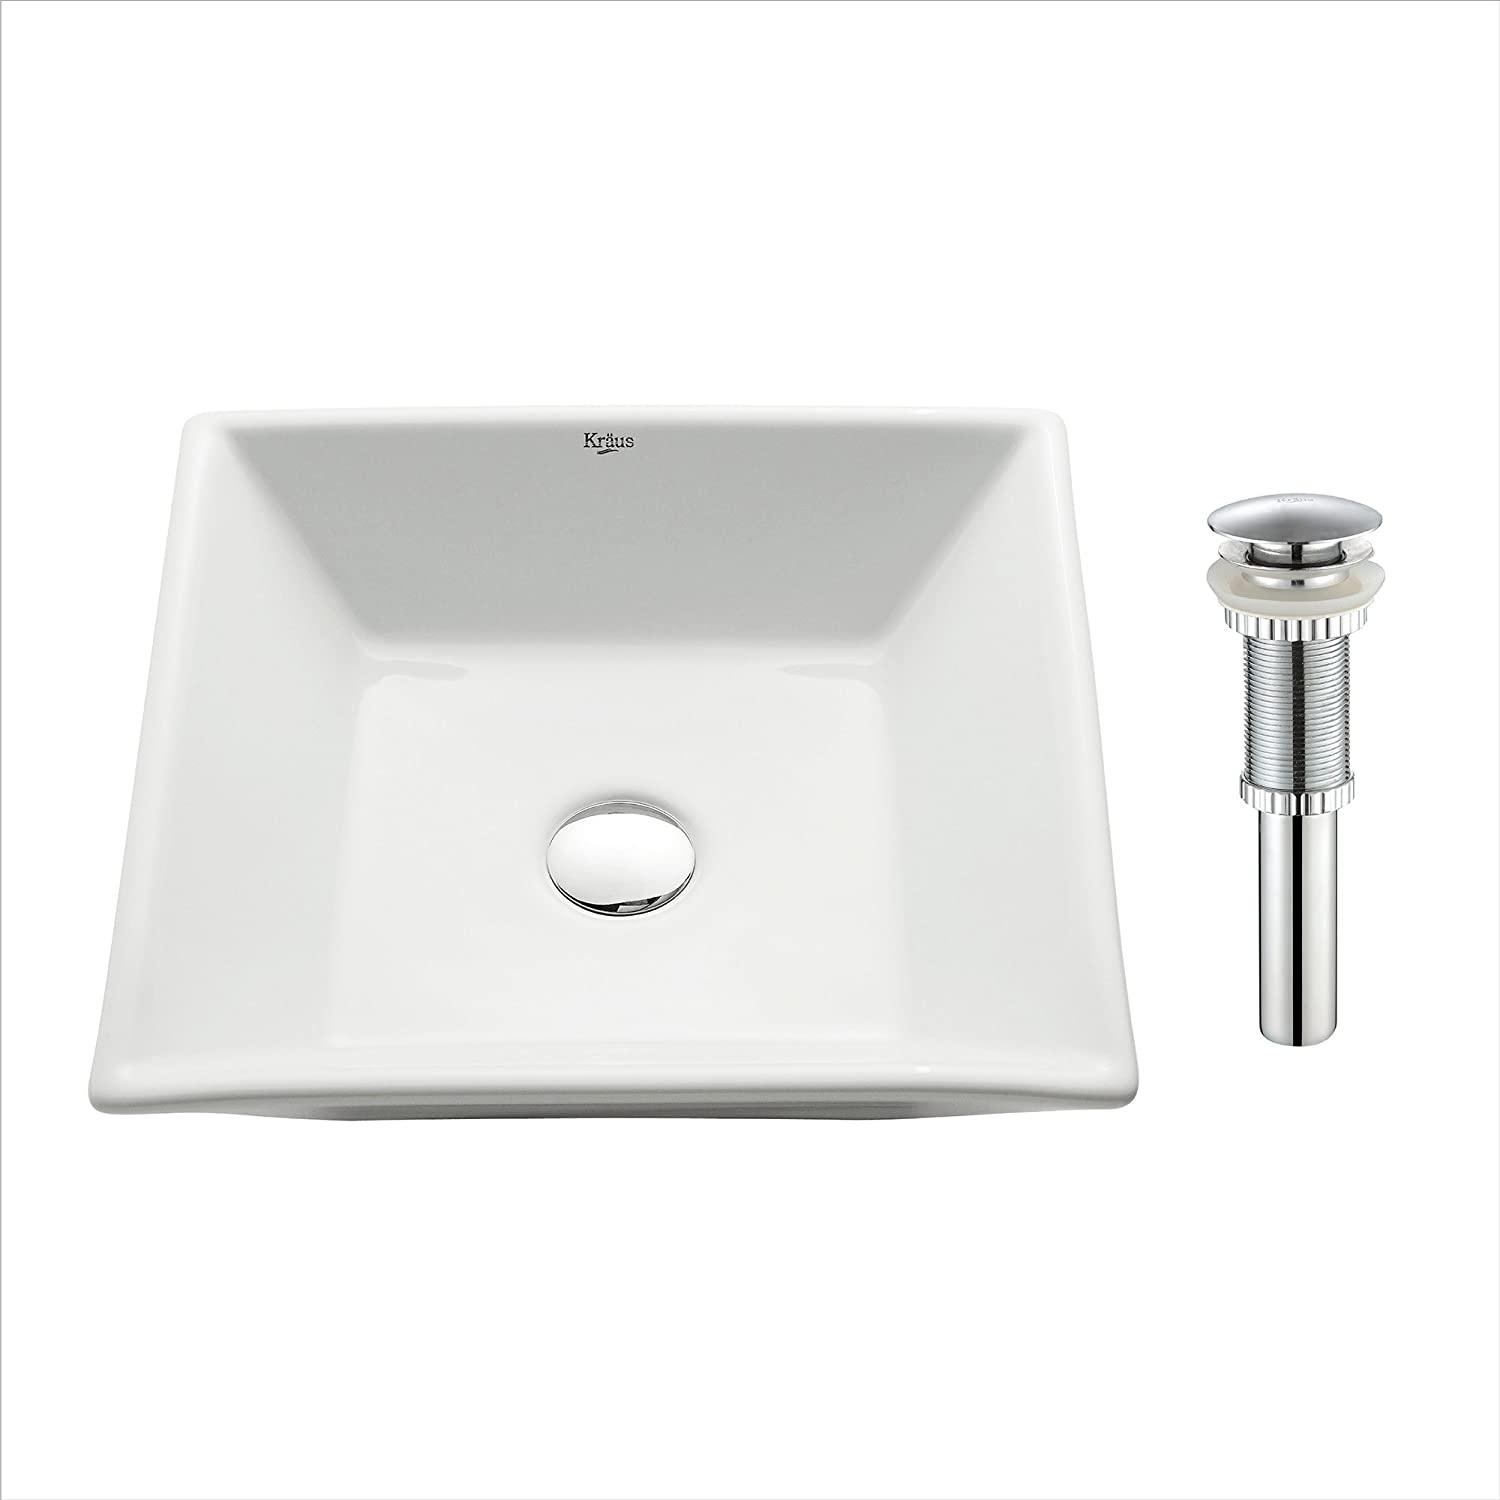 Kraus KCV-125-CH Ceramic Above counter Square Bathroom Sink, 16.8 x 16.8 x 4.72 inches, Chrome White